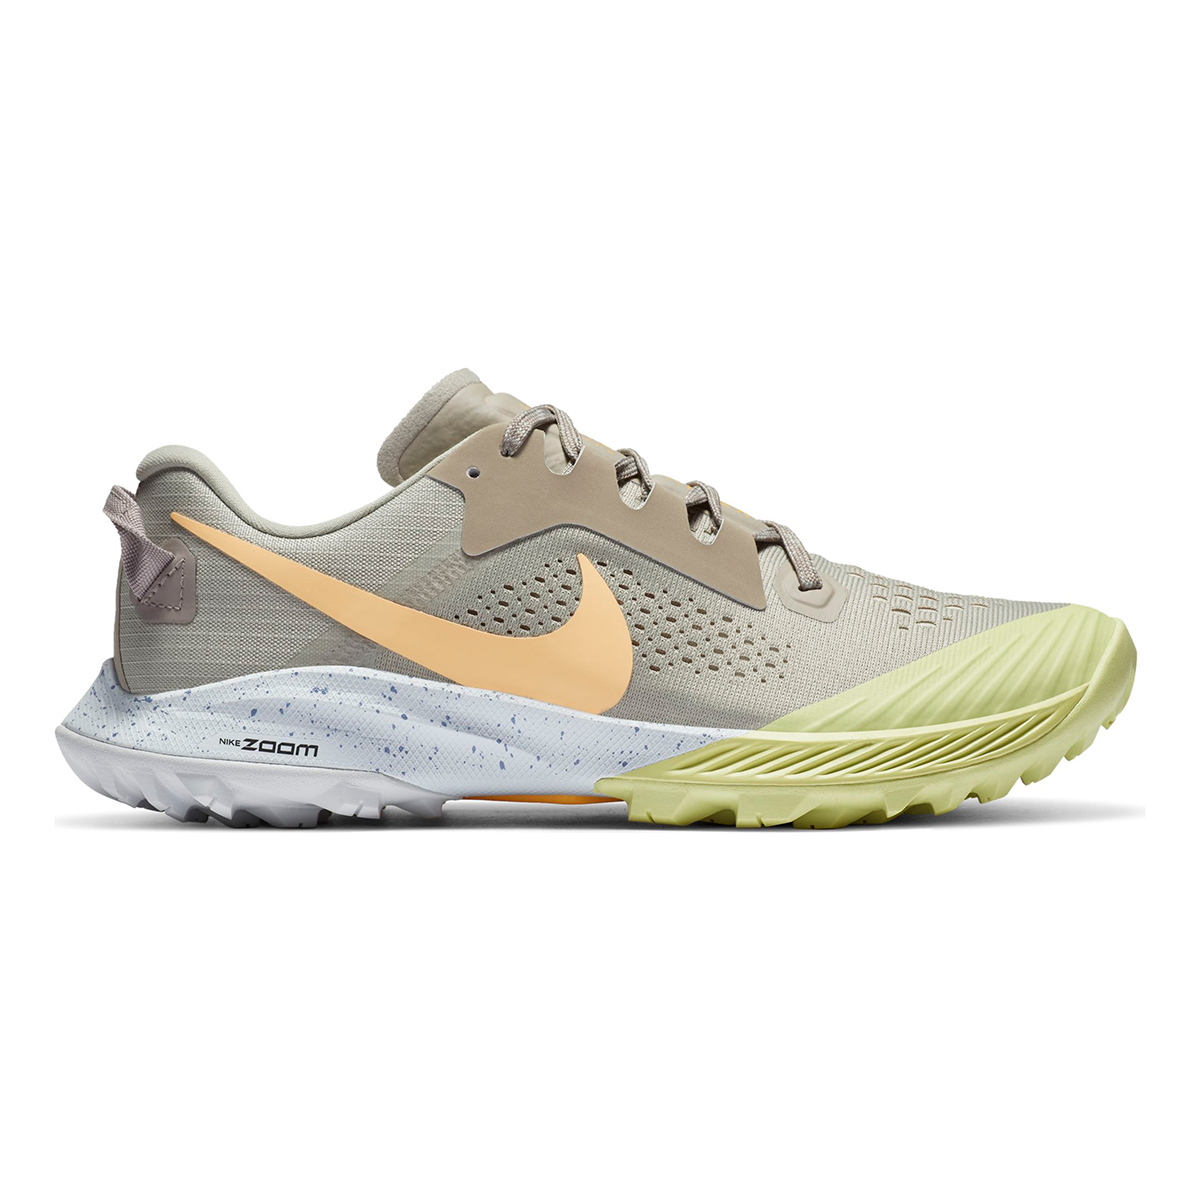 Women's Nike Terra Kiger 6 Trail Running Shoe - Color: Stone/Enigma Stone/Limelight/Melon Tint - Size: 5 - Width: Regular, Stone/Enigma Stone/Limelight/Melon Tint, large, image 1